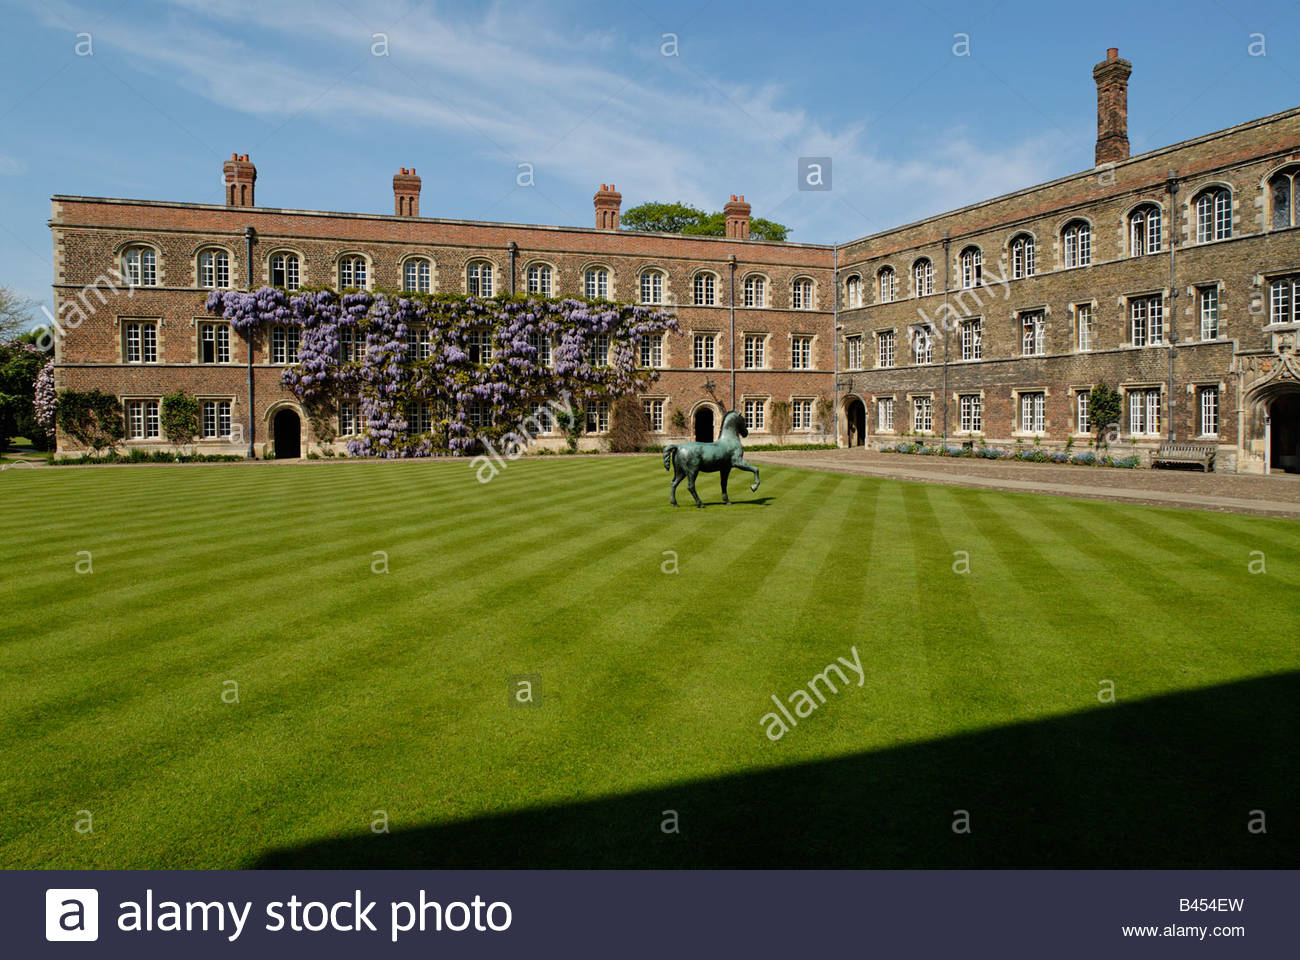 horse sculpture on the lawn of the 'First Court' of 'Jesus College' in Cambridge - Stock Image